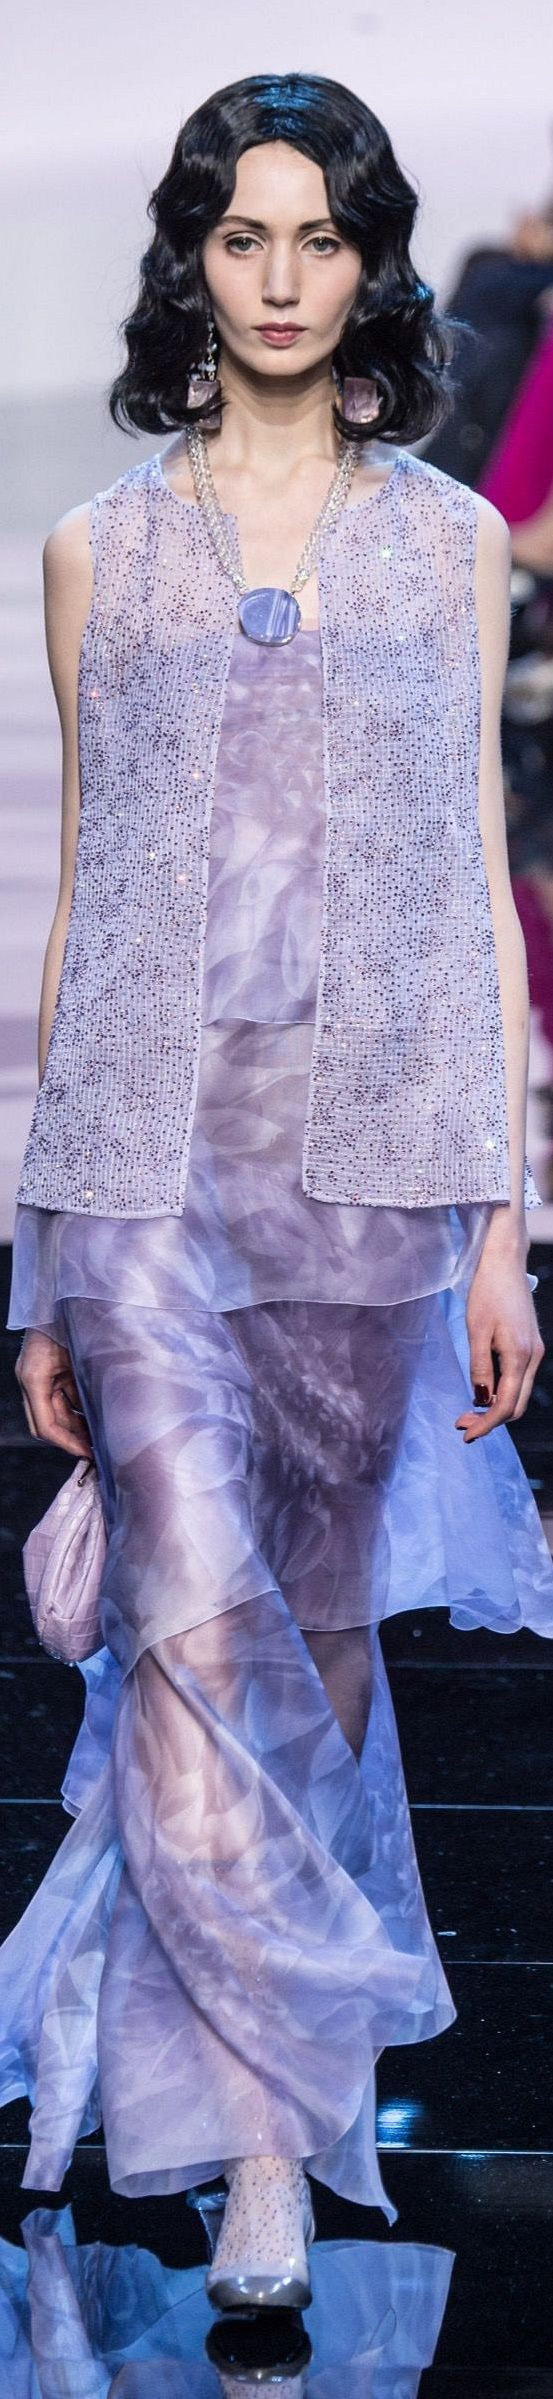 Armani Prive spring 2016 couture